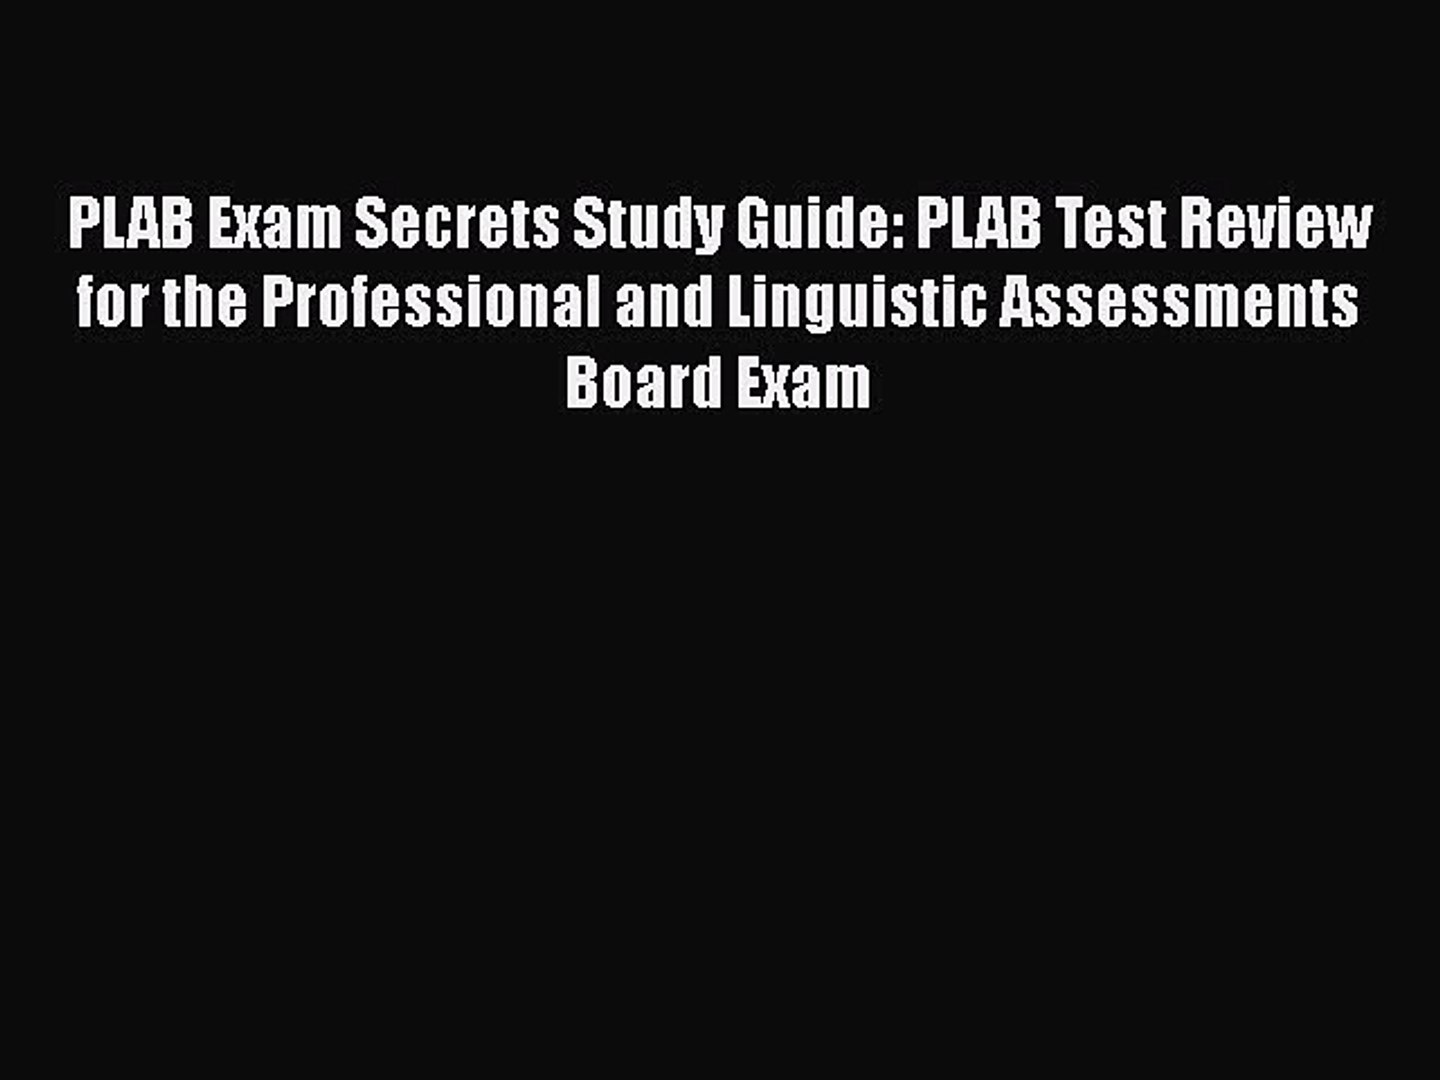 [PDF] PLAB Exam Secrets Study Guide: PLAB Test Review for the Professional  and Linguistic Assessments